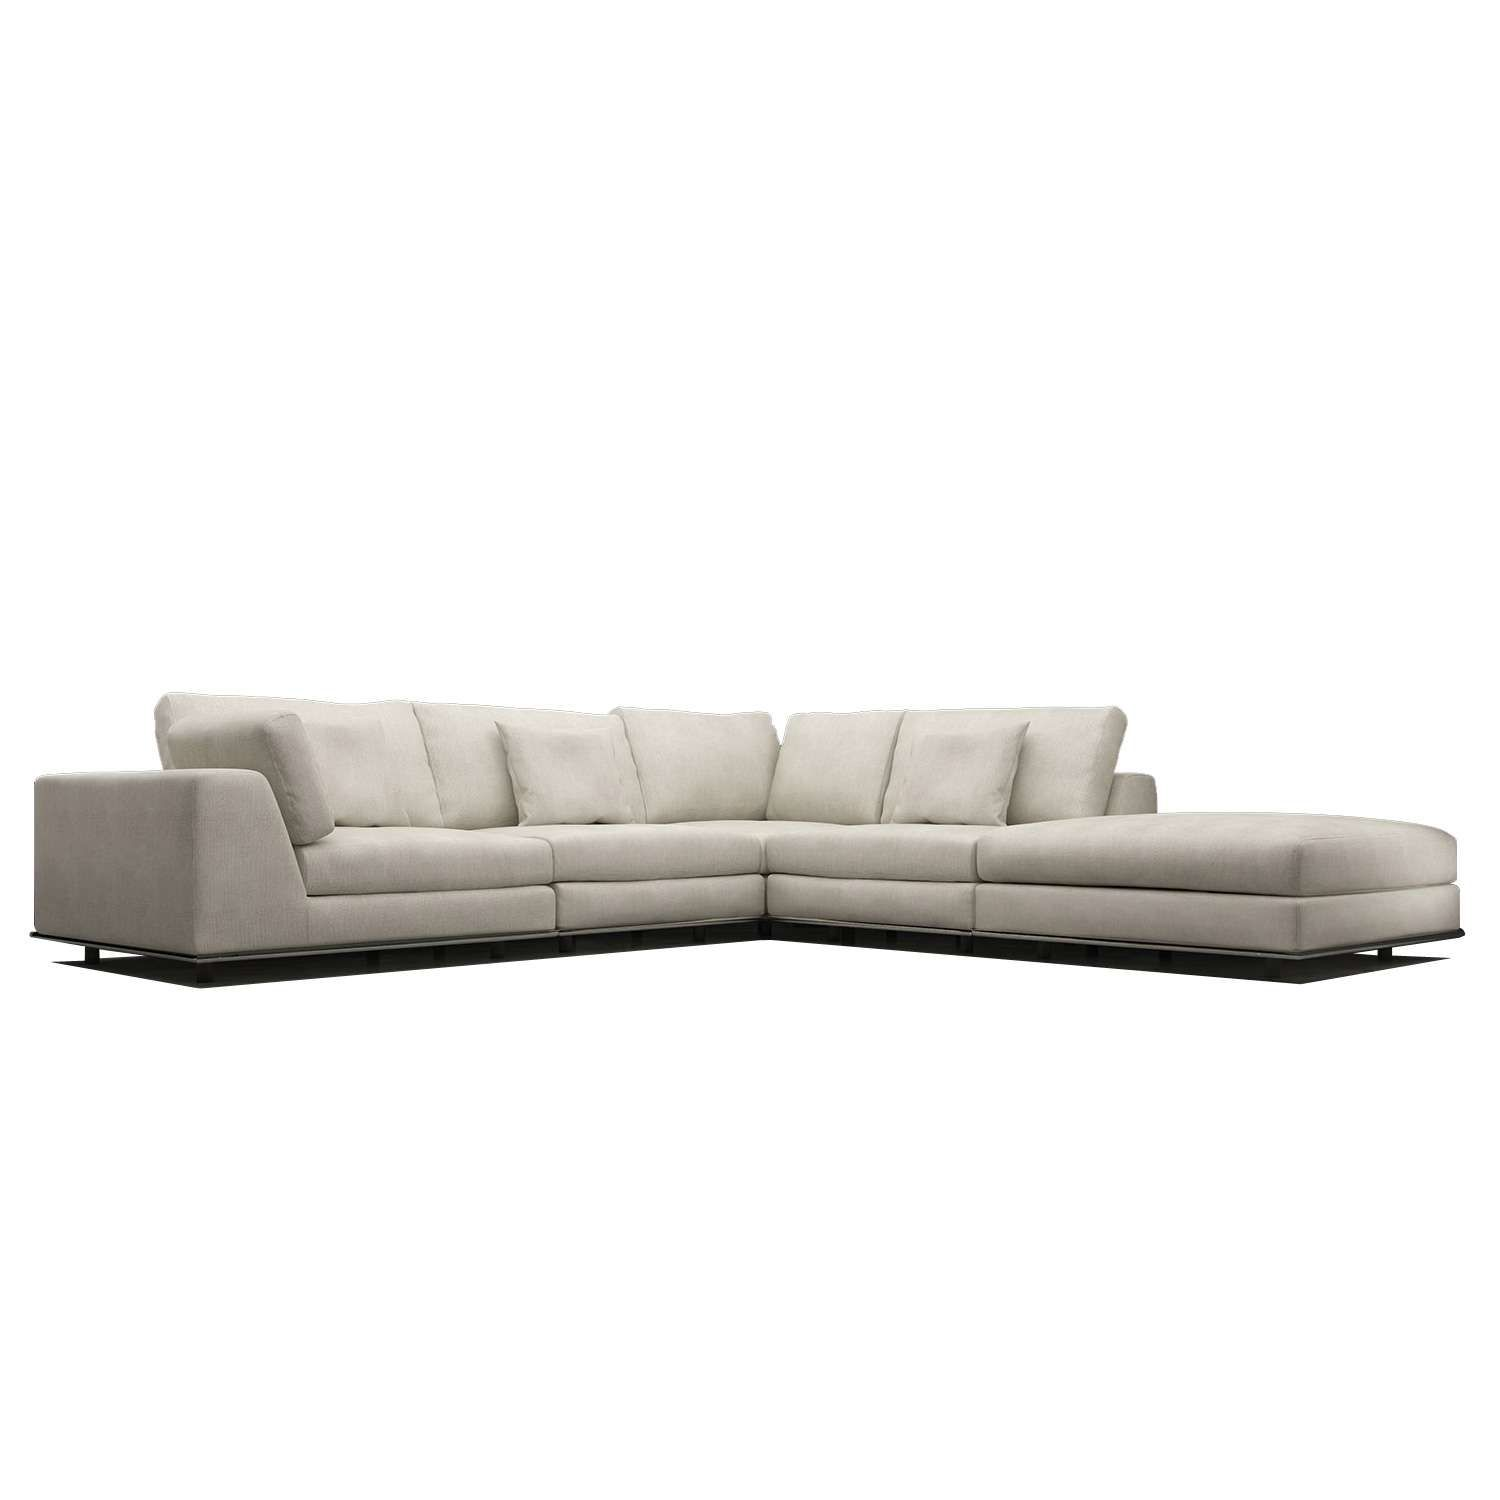 fantastic oversized sectional sofas online-Lovely Oversized Sectional sofas Portrait